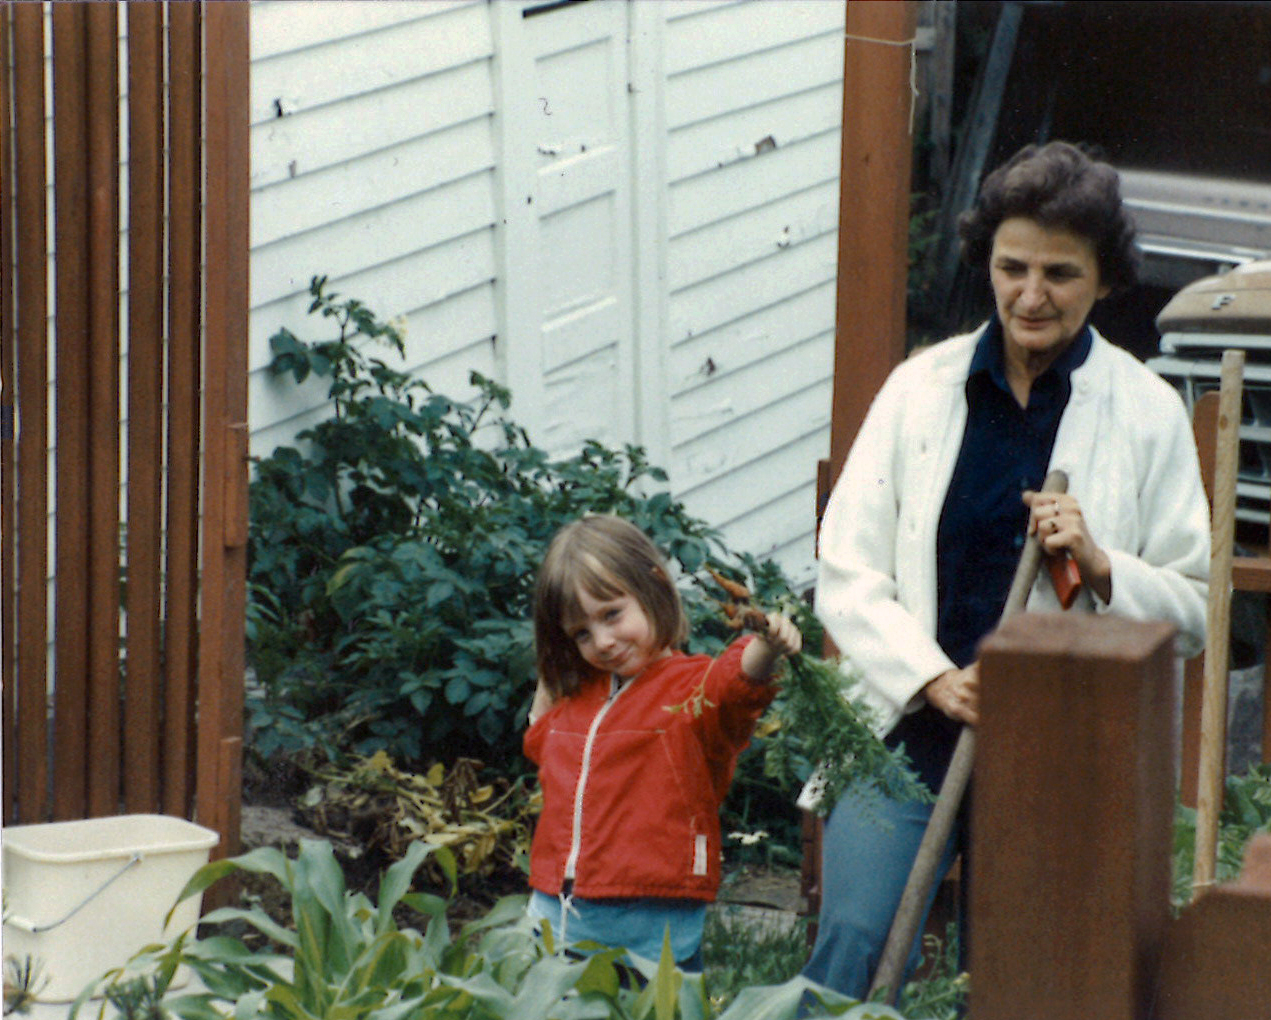 Me and my grandma, Marge, in her vegetable garden.